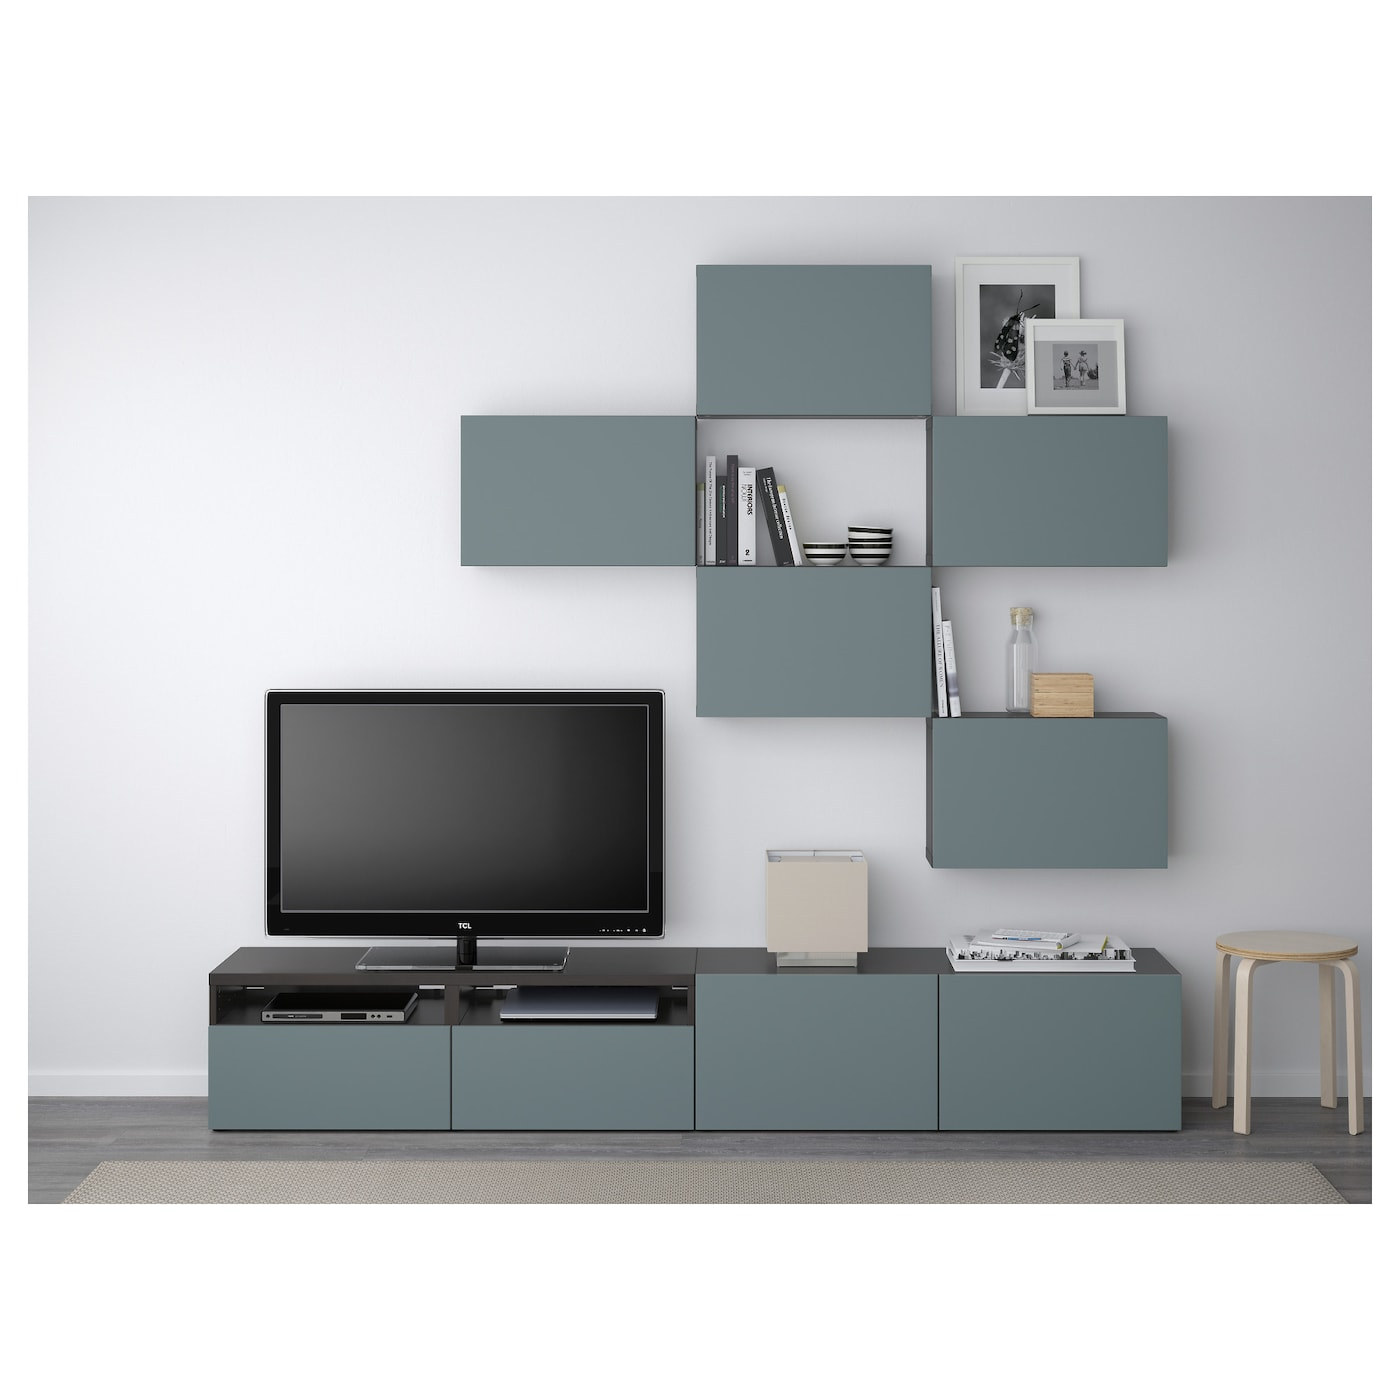 best tv storage combination black brown valviken grey turquoise 240x20 40x204 cm ikea. Black Bedroom Furniture Sets. Home Design Ideas